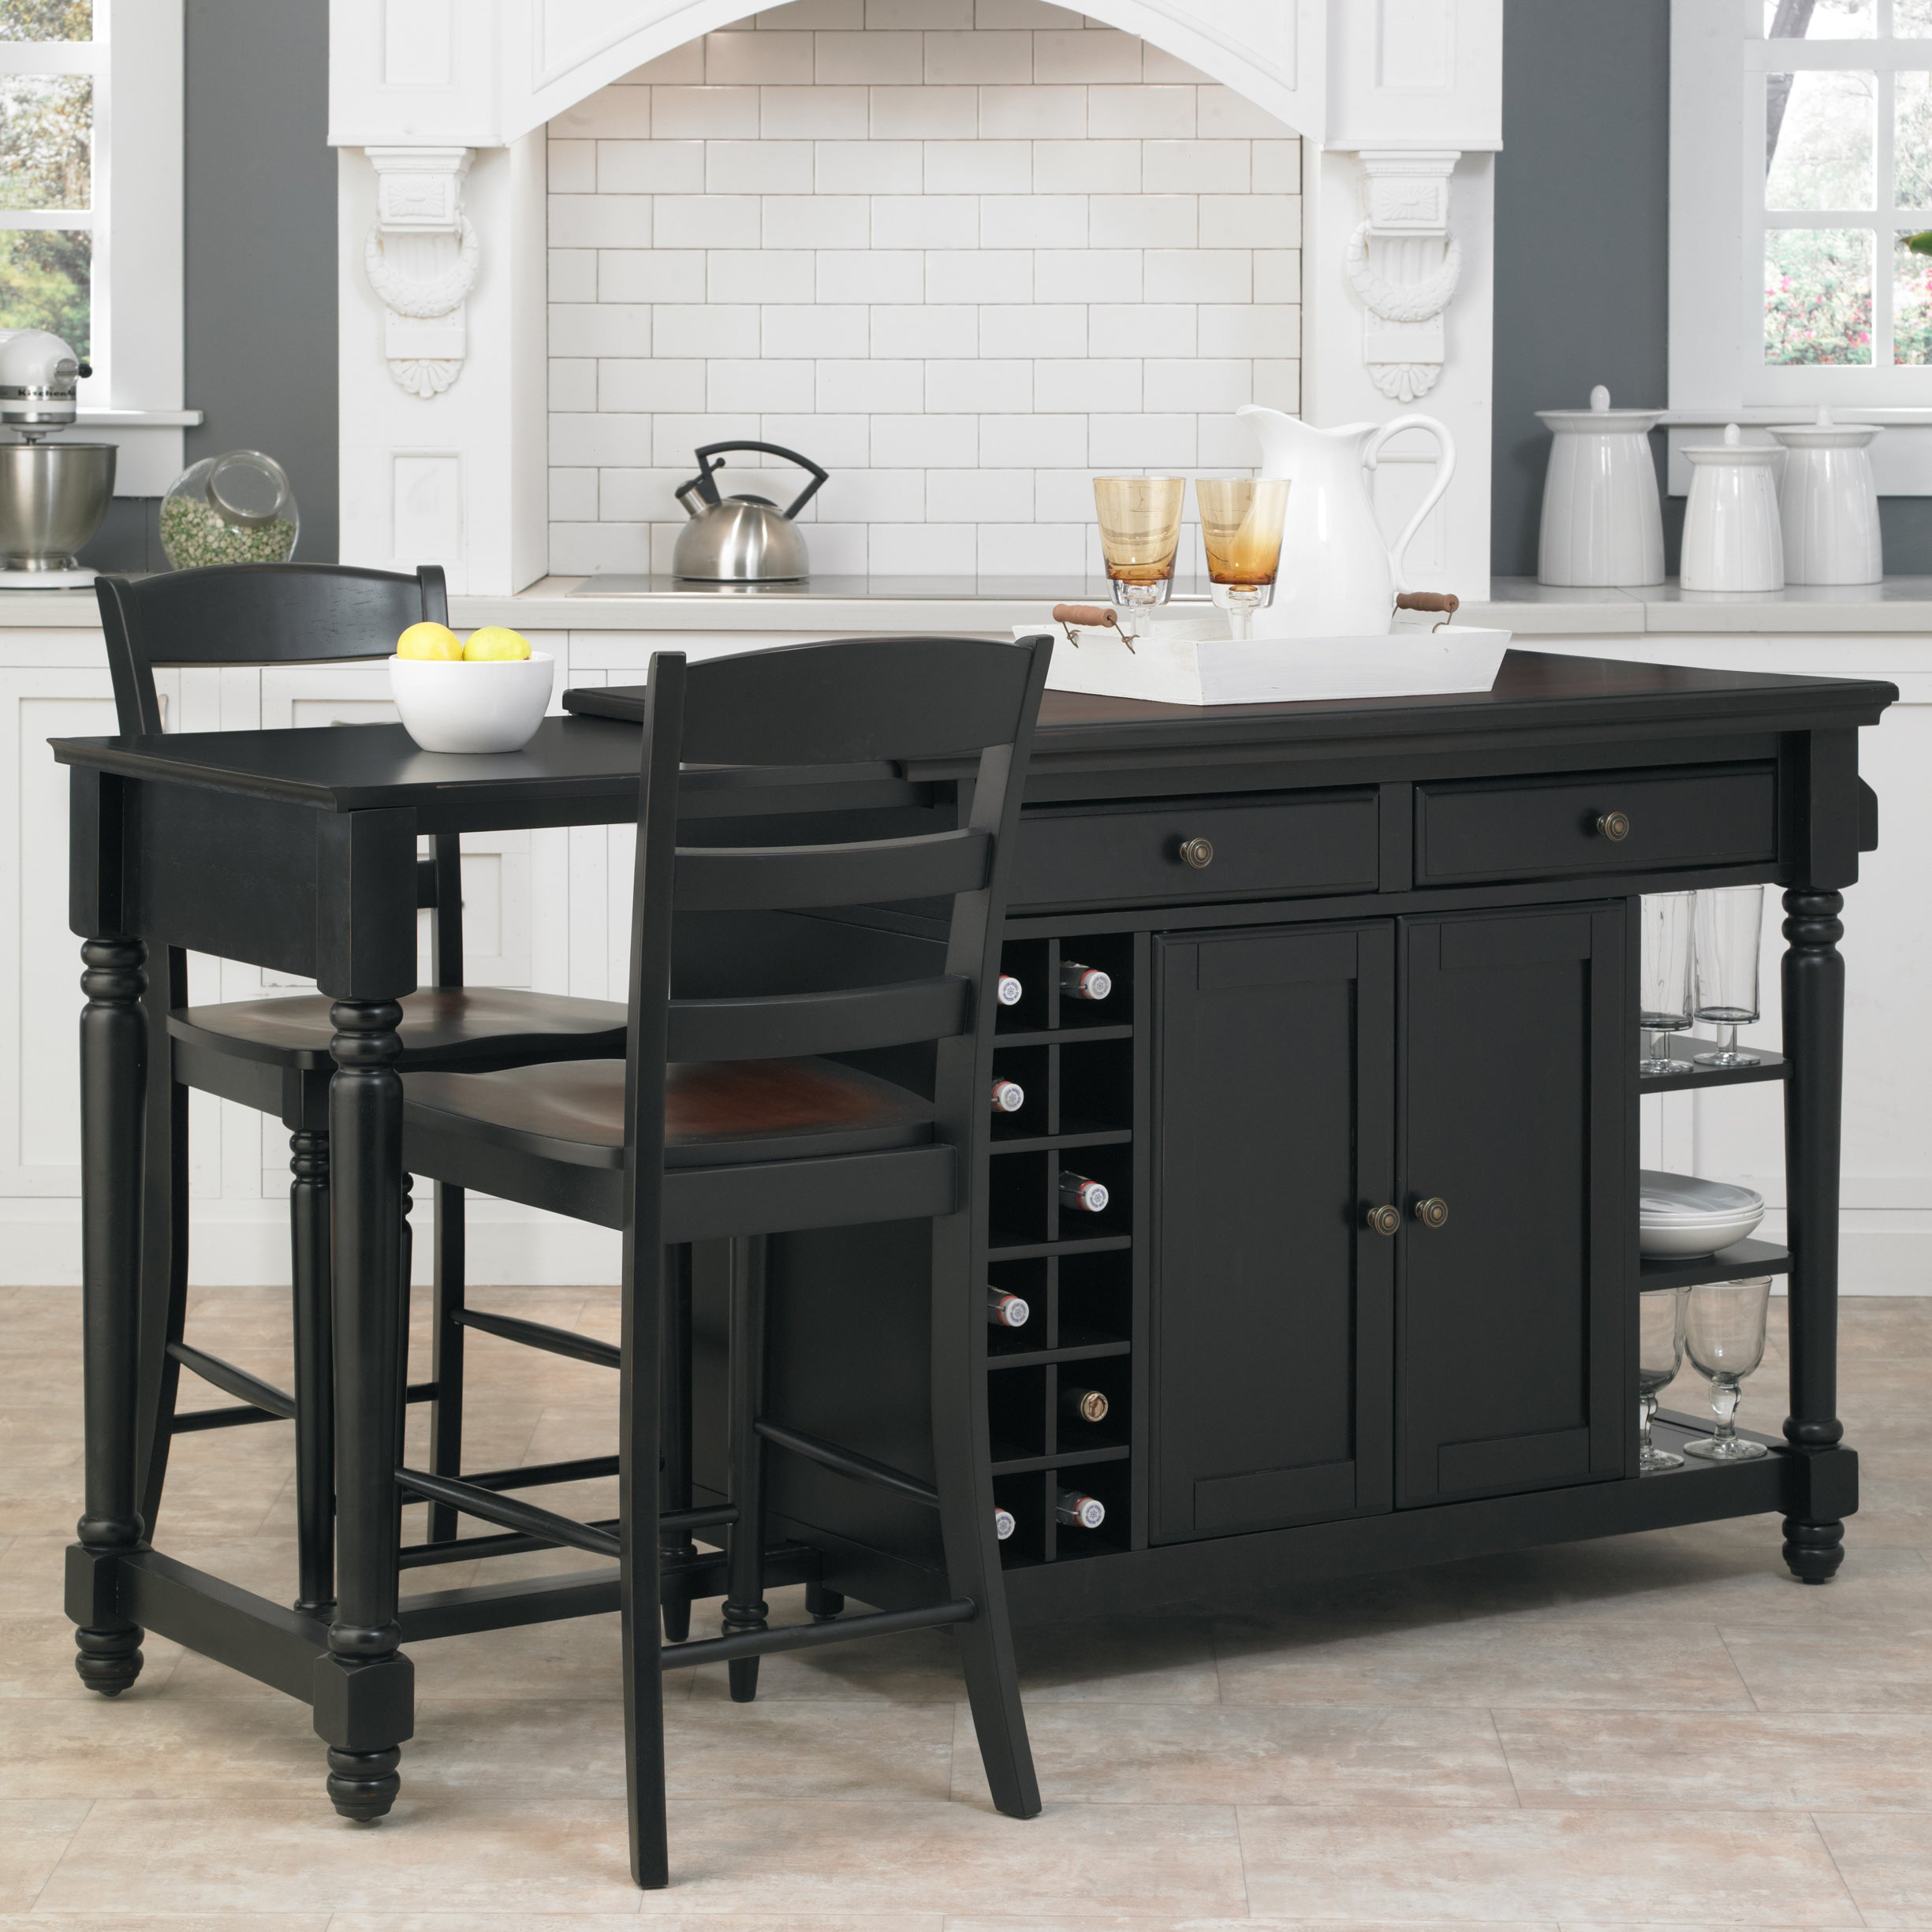 Top Quality Gracewood Hollow Remarqu Kitchen Island With Seating